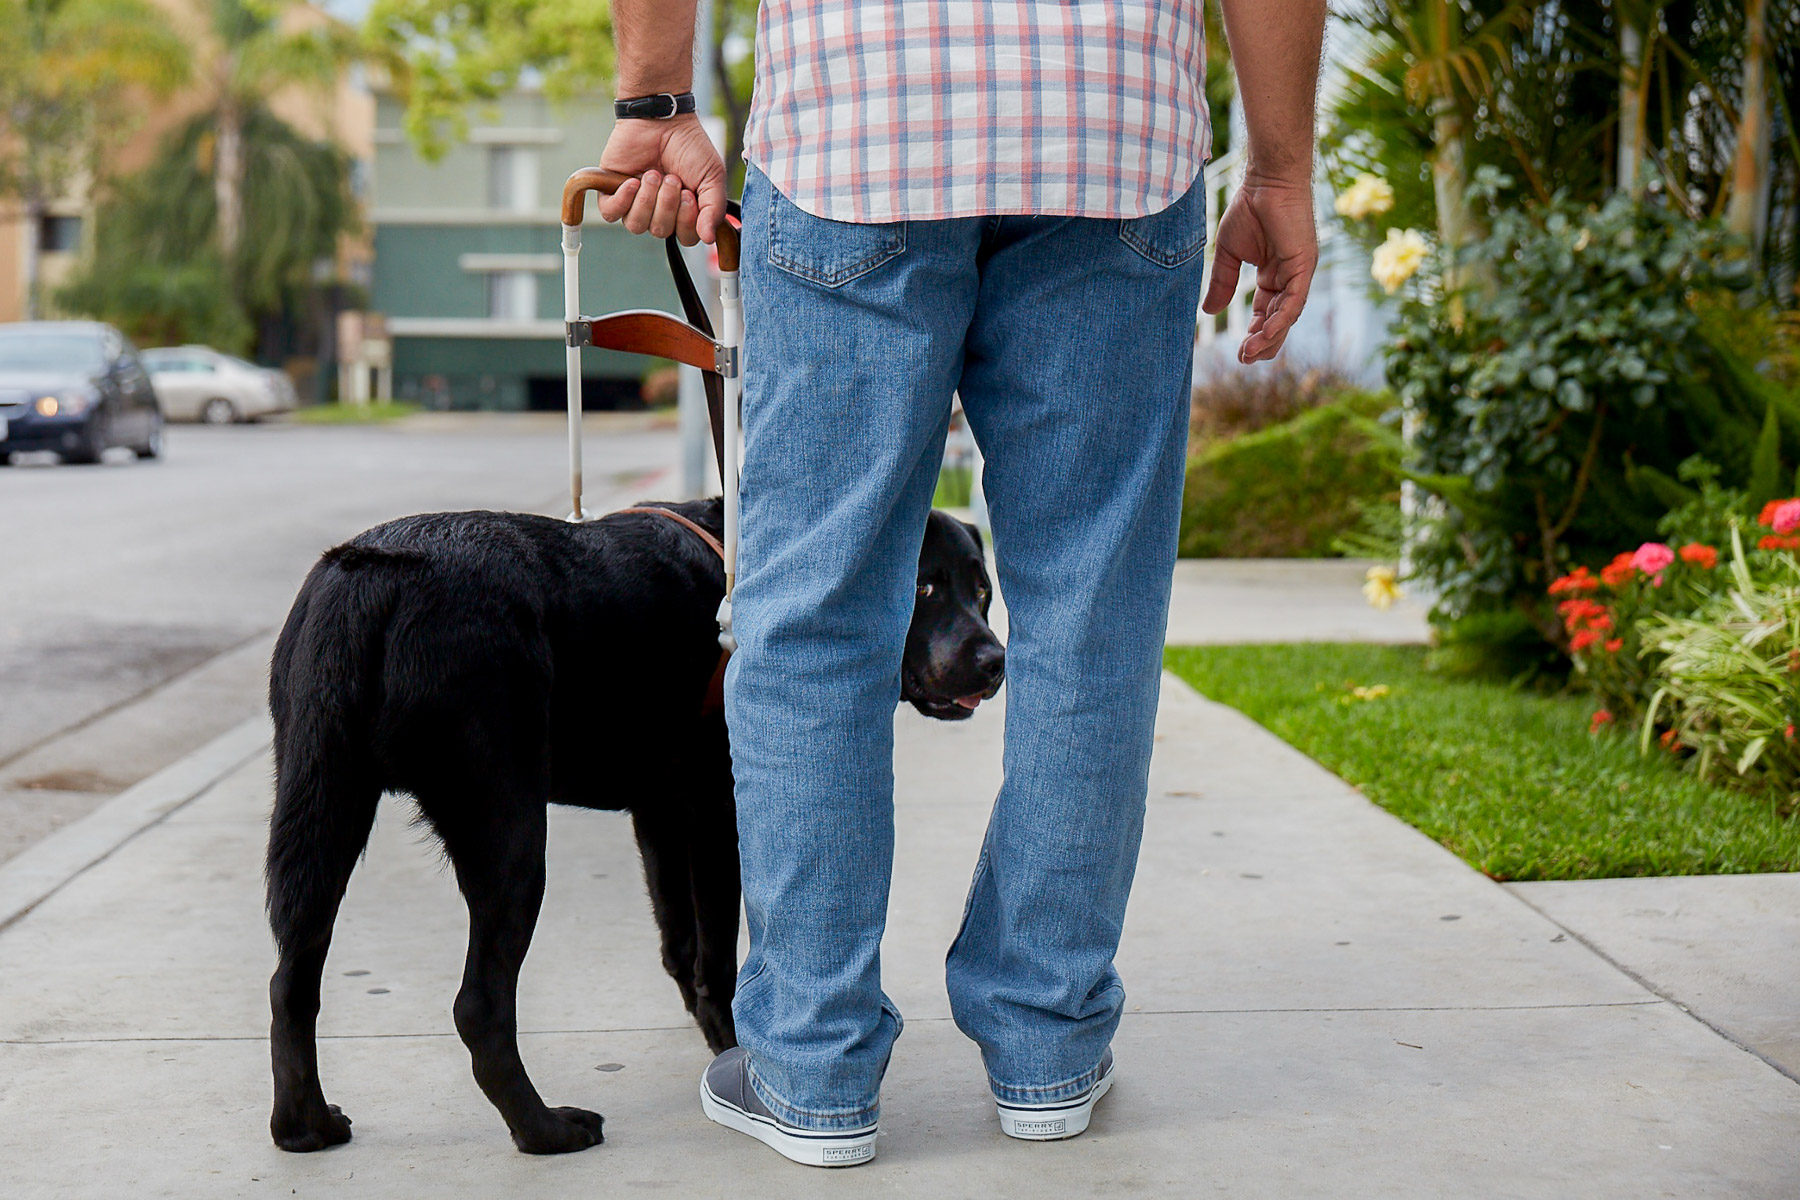 labrador-dog-guidance-for-blind-person-dog-photographer-los-angeles.jpg